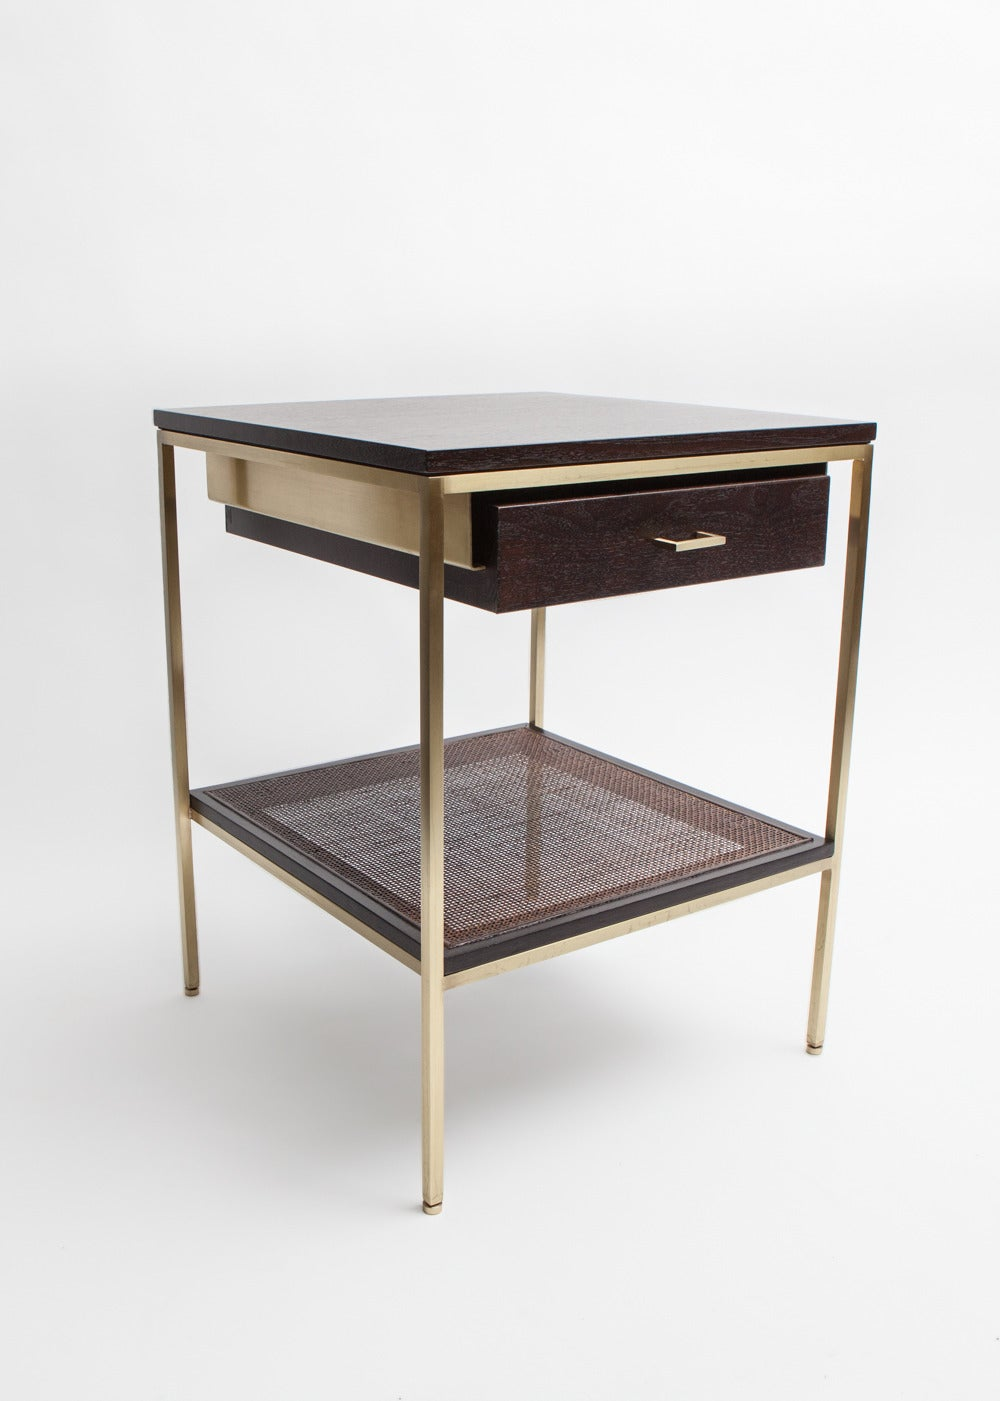 Pair of reGeneration Custom Ebony and Caned Bedside Tables In Excellent Condition For Sale In New York, NY